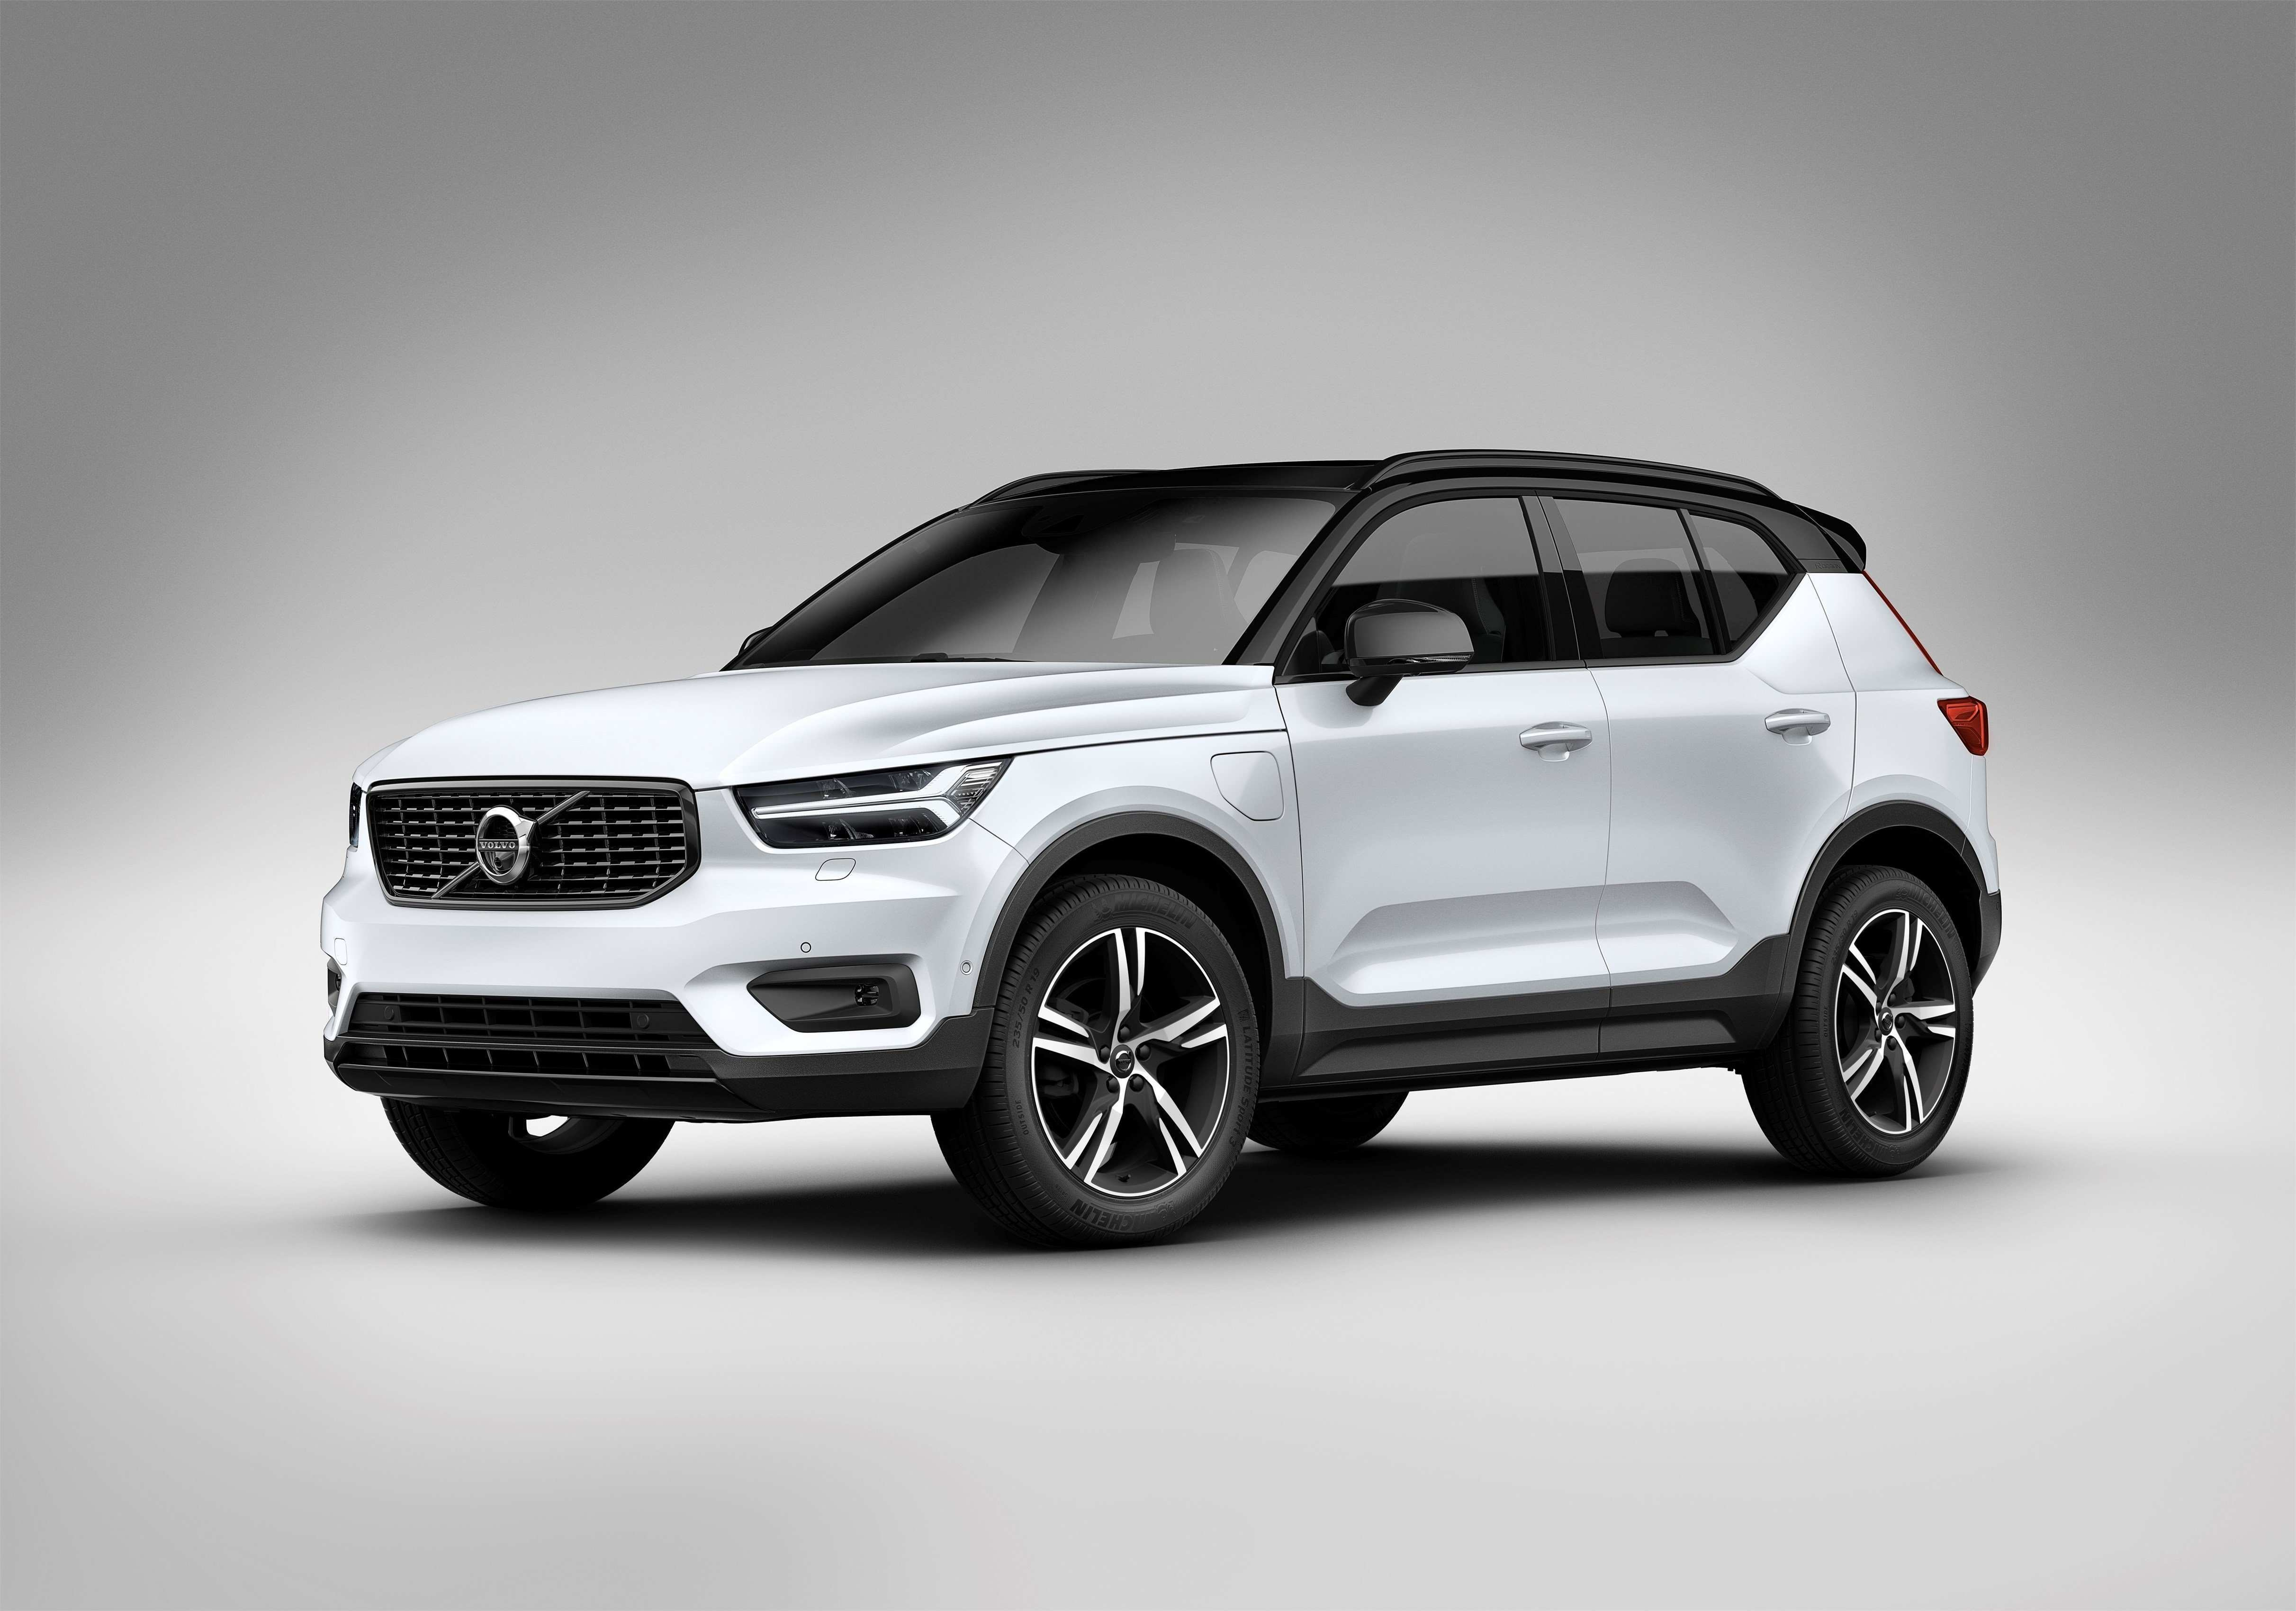 92 Great Volvo 2019 Electric Hybrid Specs with Volvo 2019 Electric Hybrid